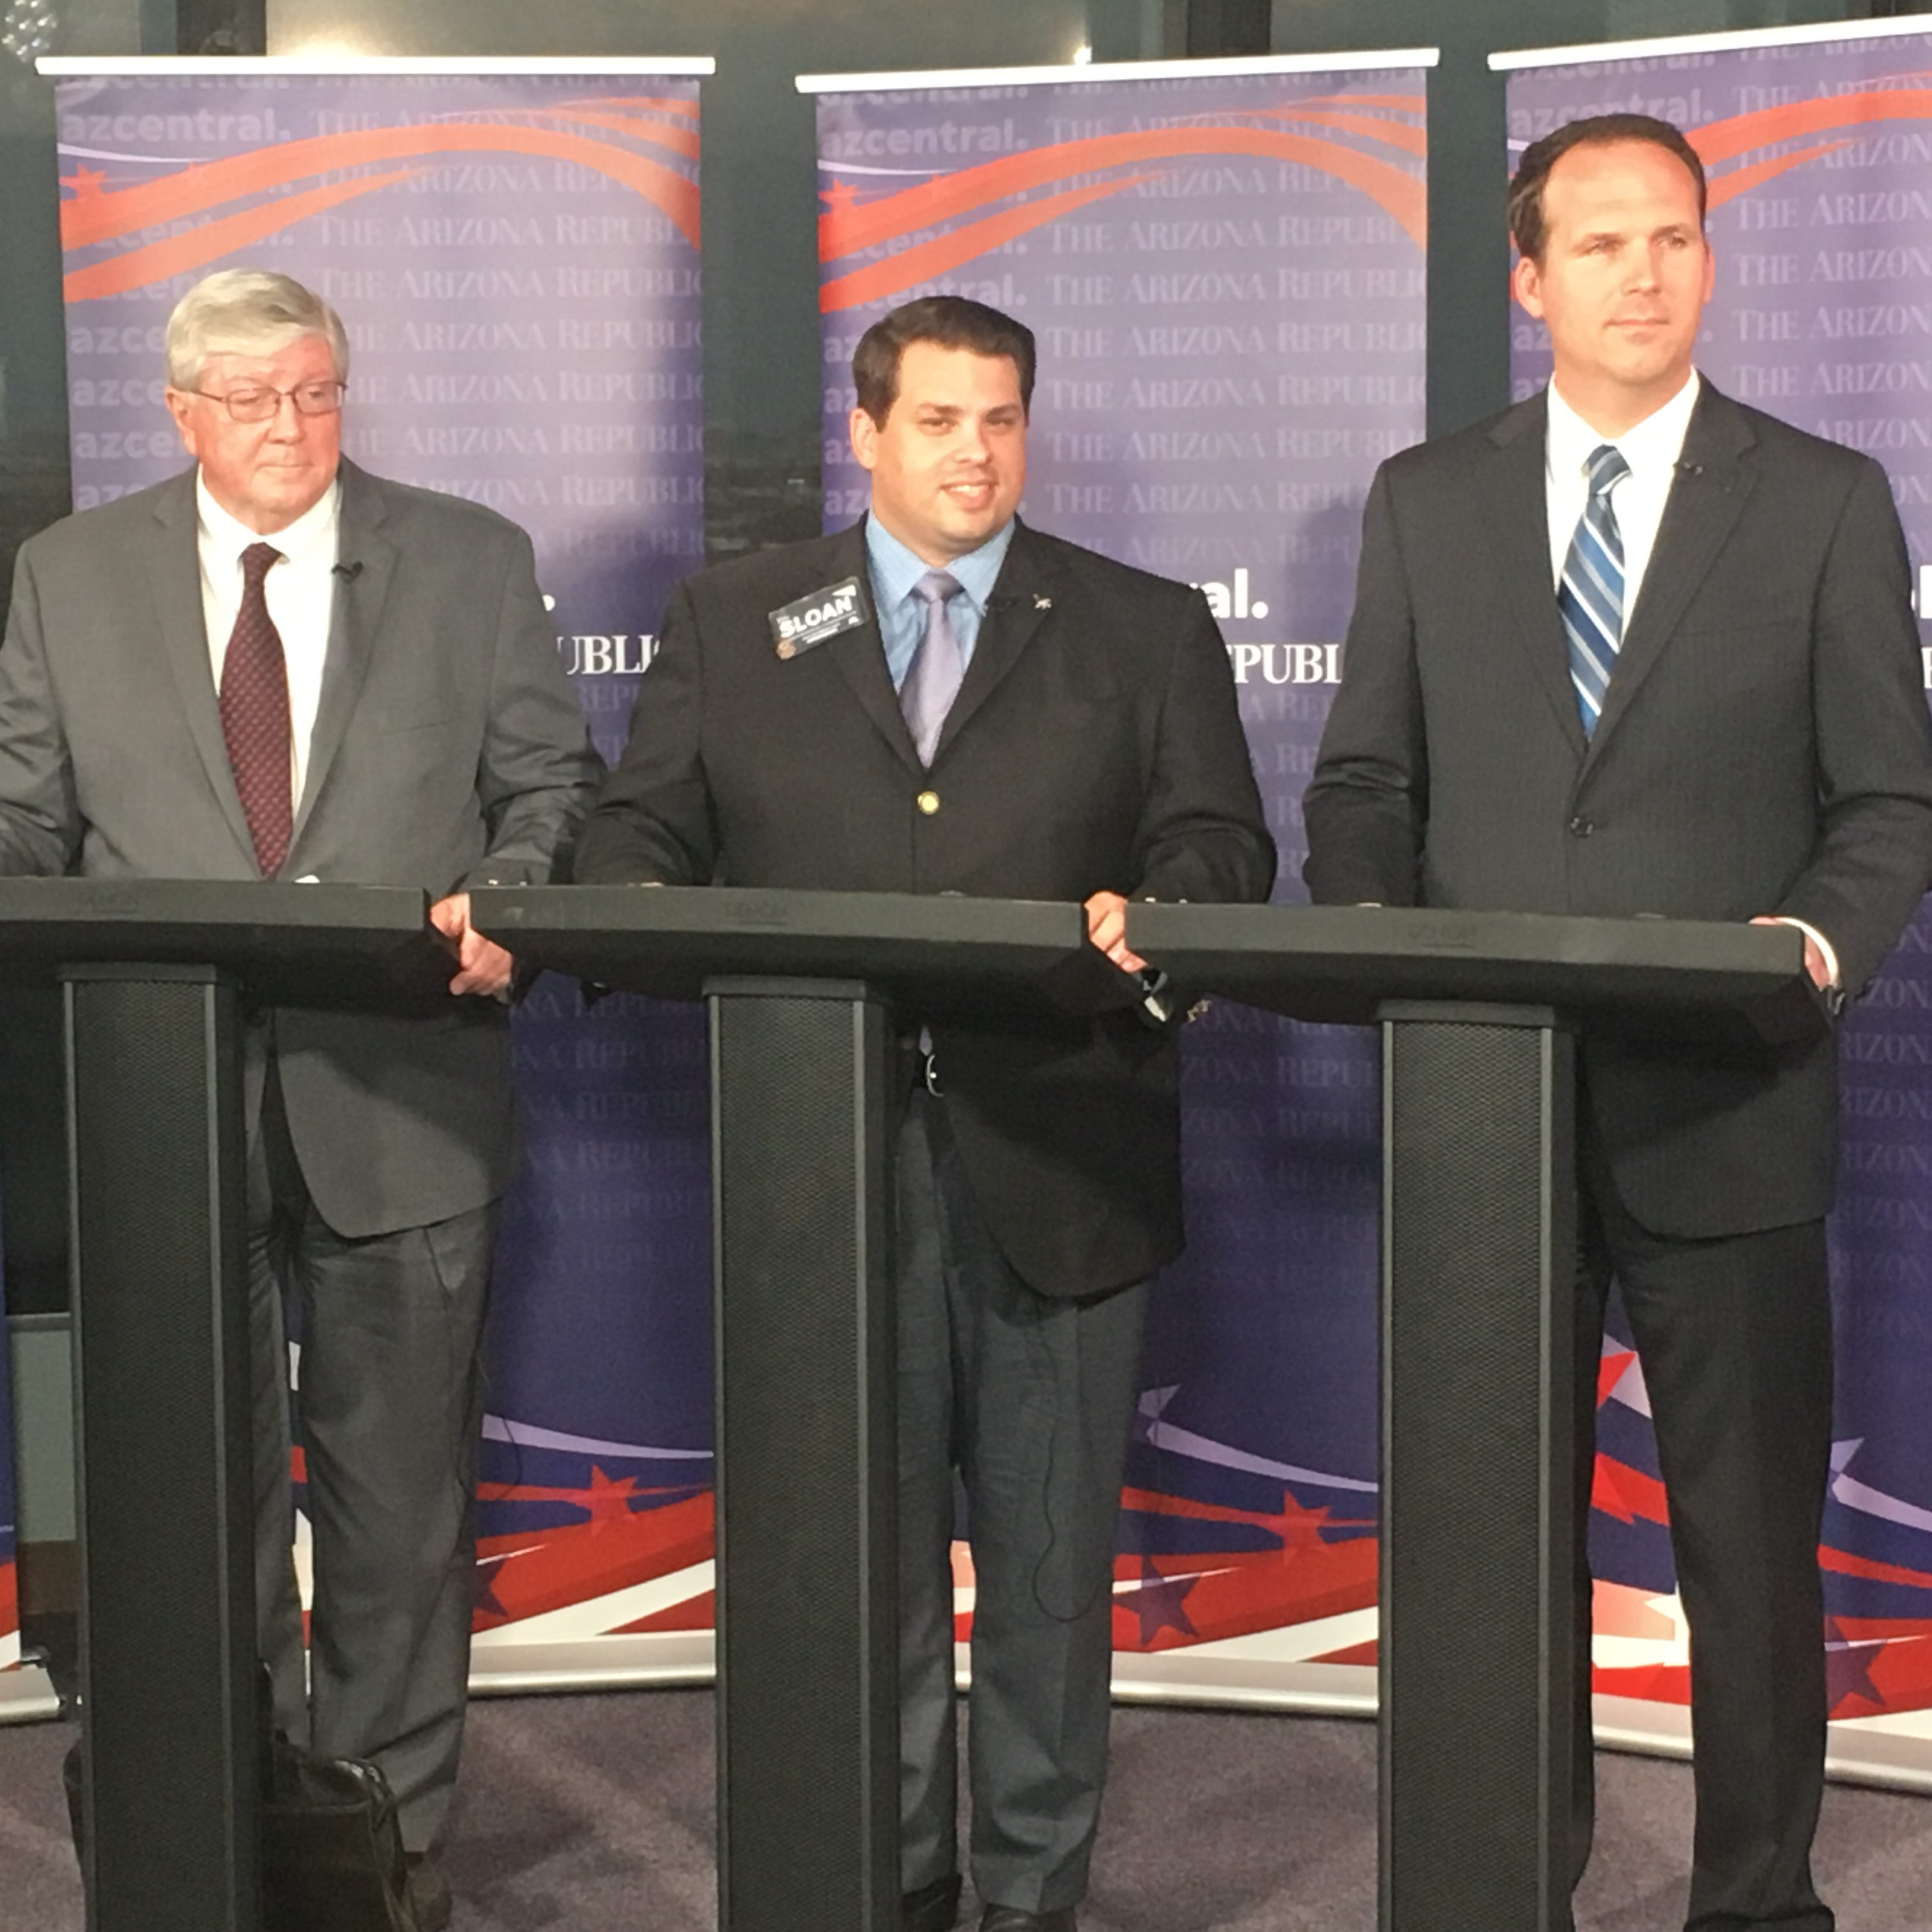 Republican Corporation Commission hopefuls debate integrity, APS, renewables